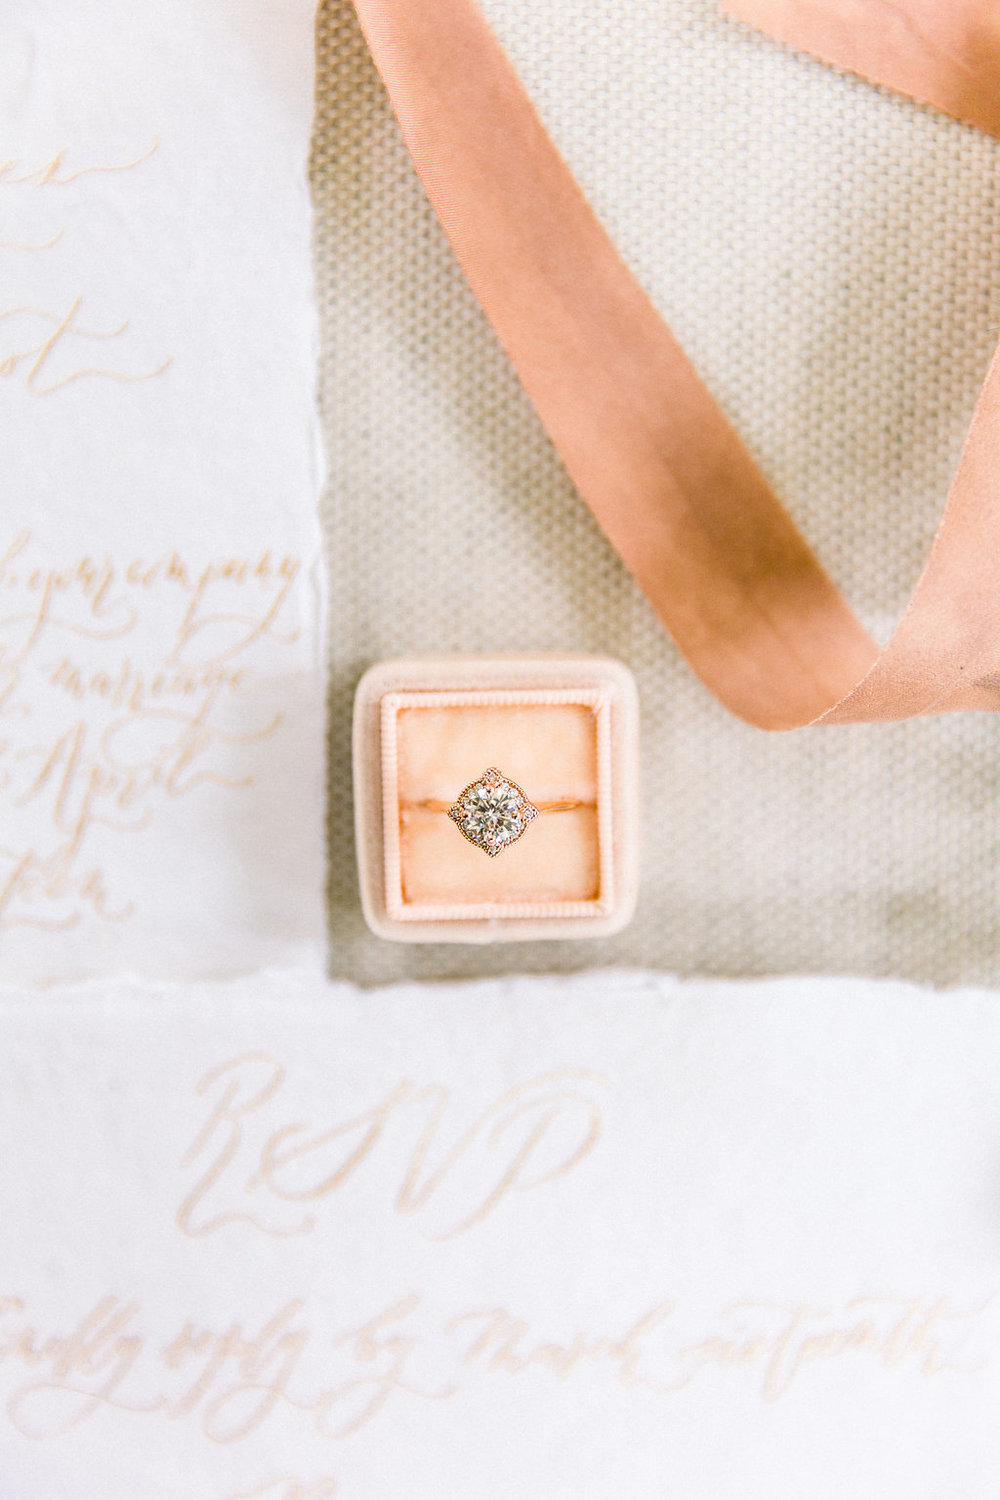 Engagement Ring and wedding stationery.